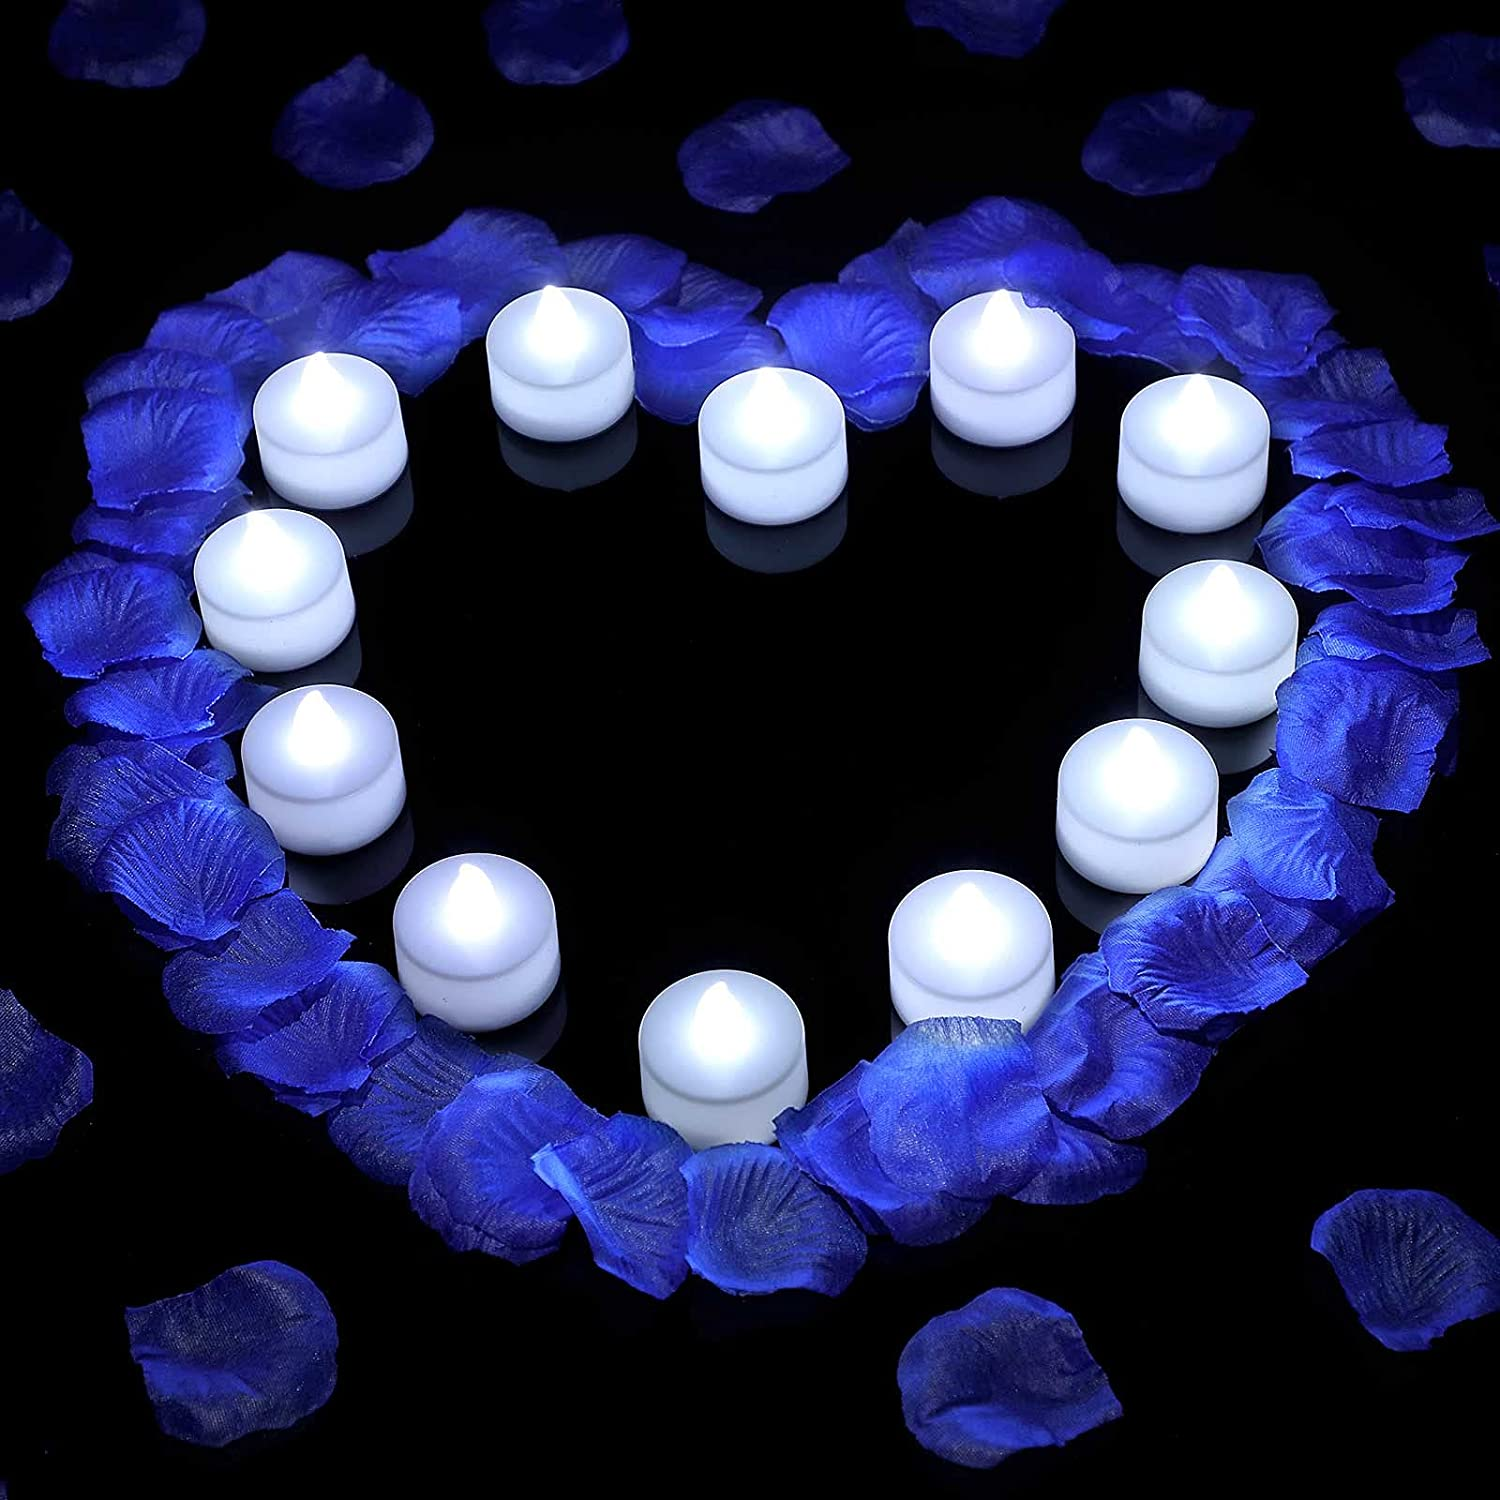 500 Pieces Artificial Fake Rose Petals with 12 Pieces Flameless LED Tea Lights Candles for Romantic Night, Valentine's Day Wedding Flower Decoration Anniversary Honeymoon (Blue Petal, White Tea Light)